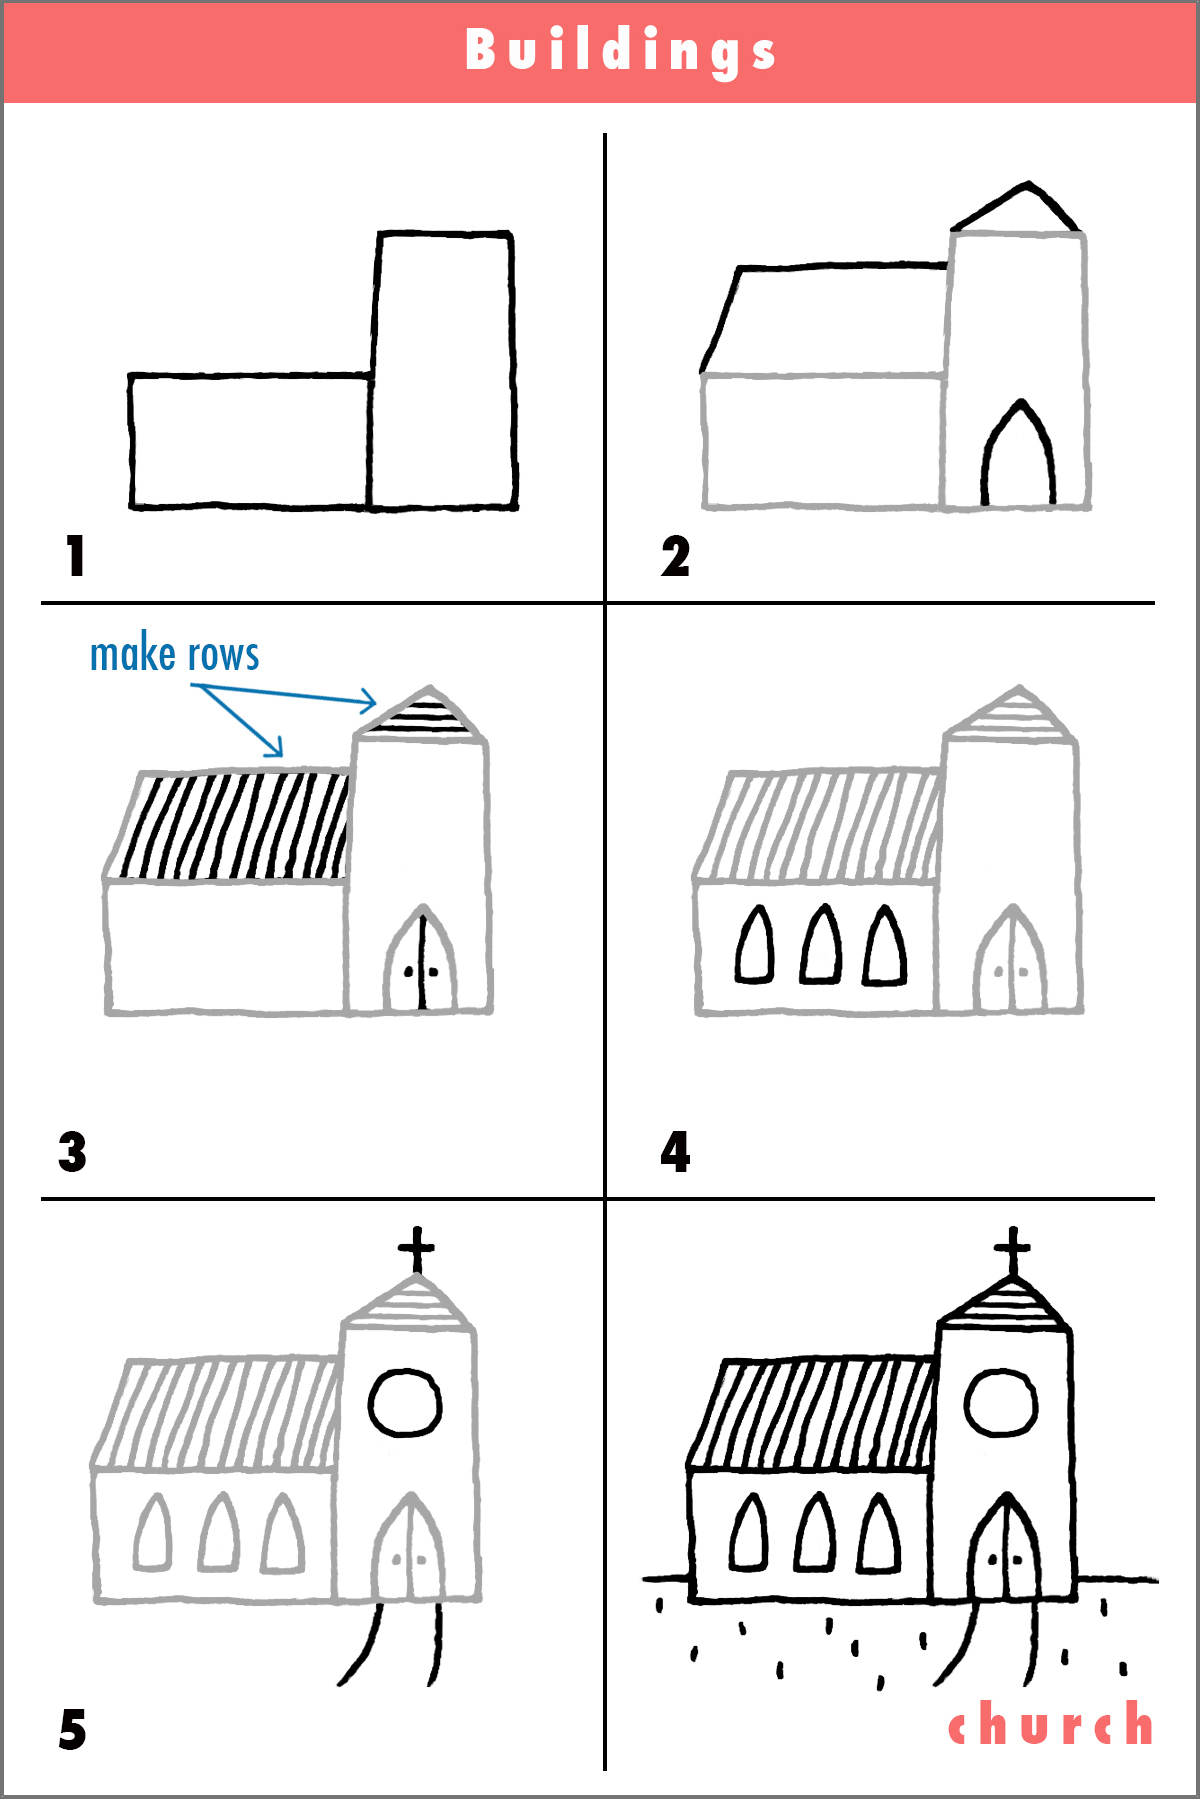 Church draw step by step cartoon pencil fun simple shapes Step by step to build a house